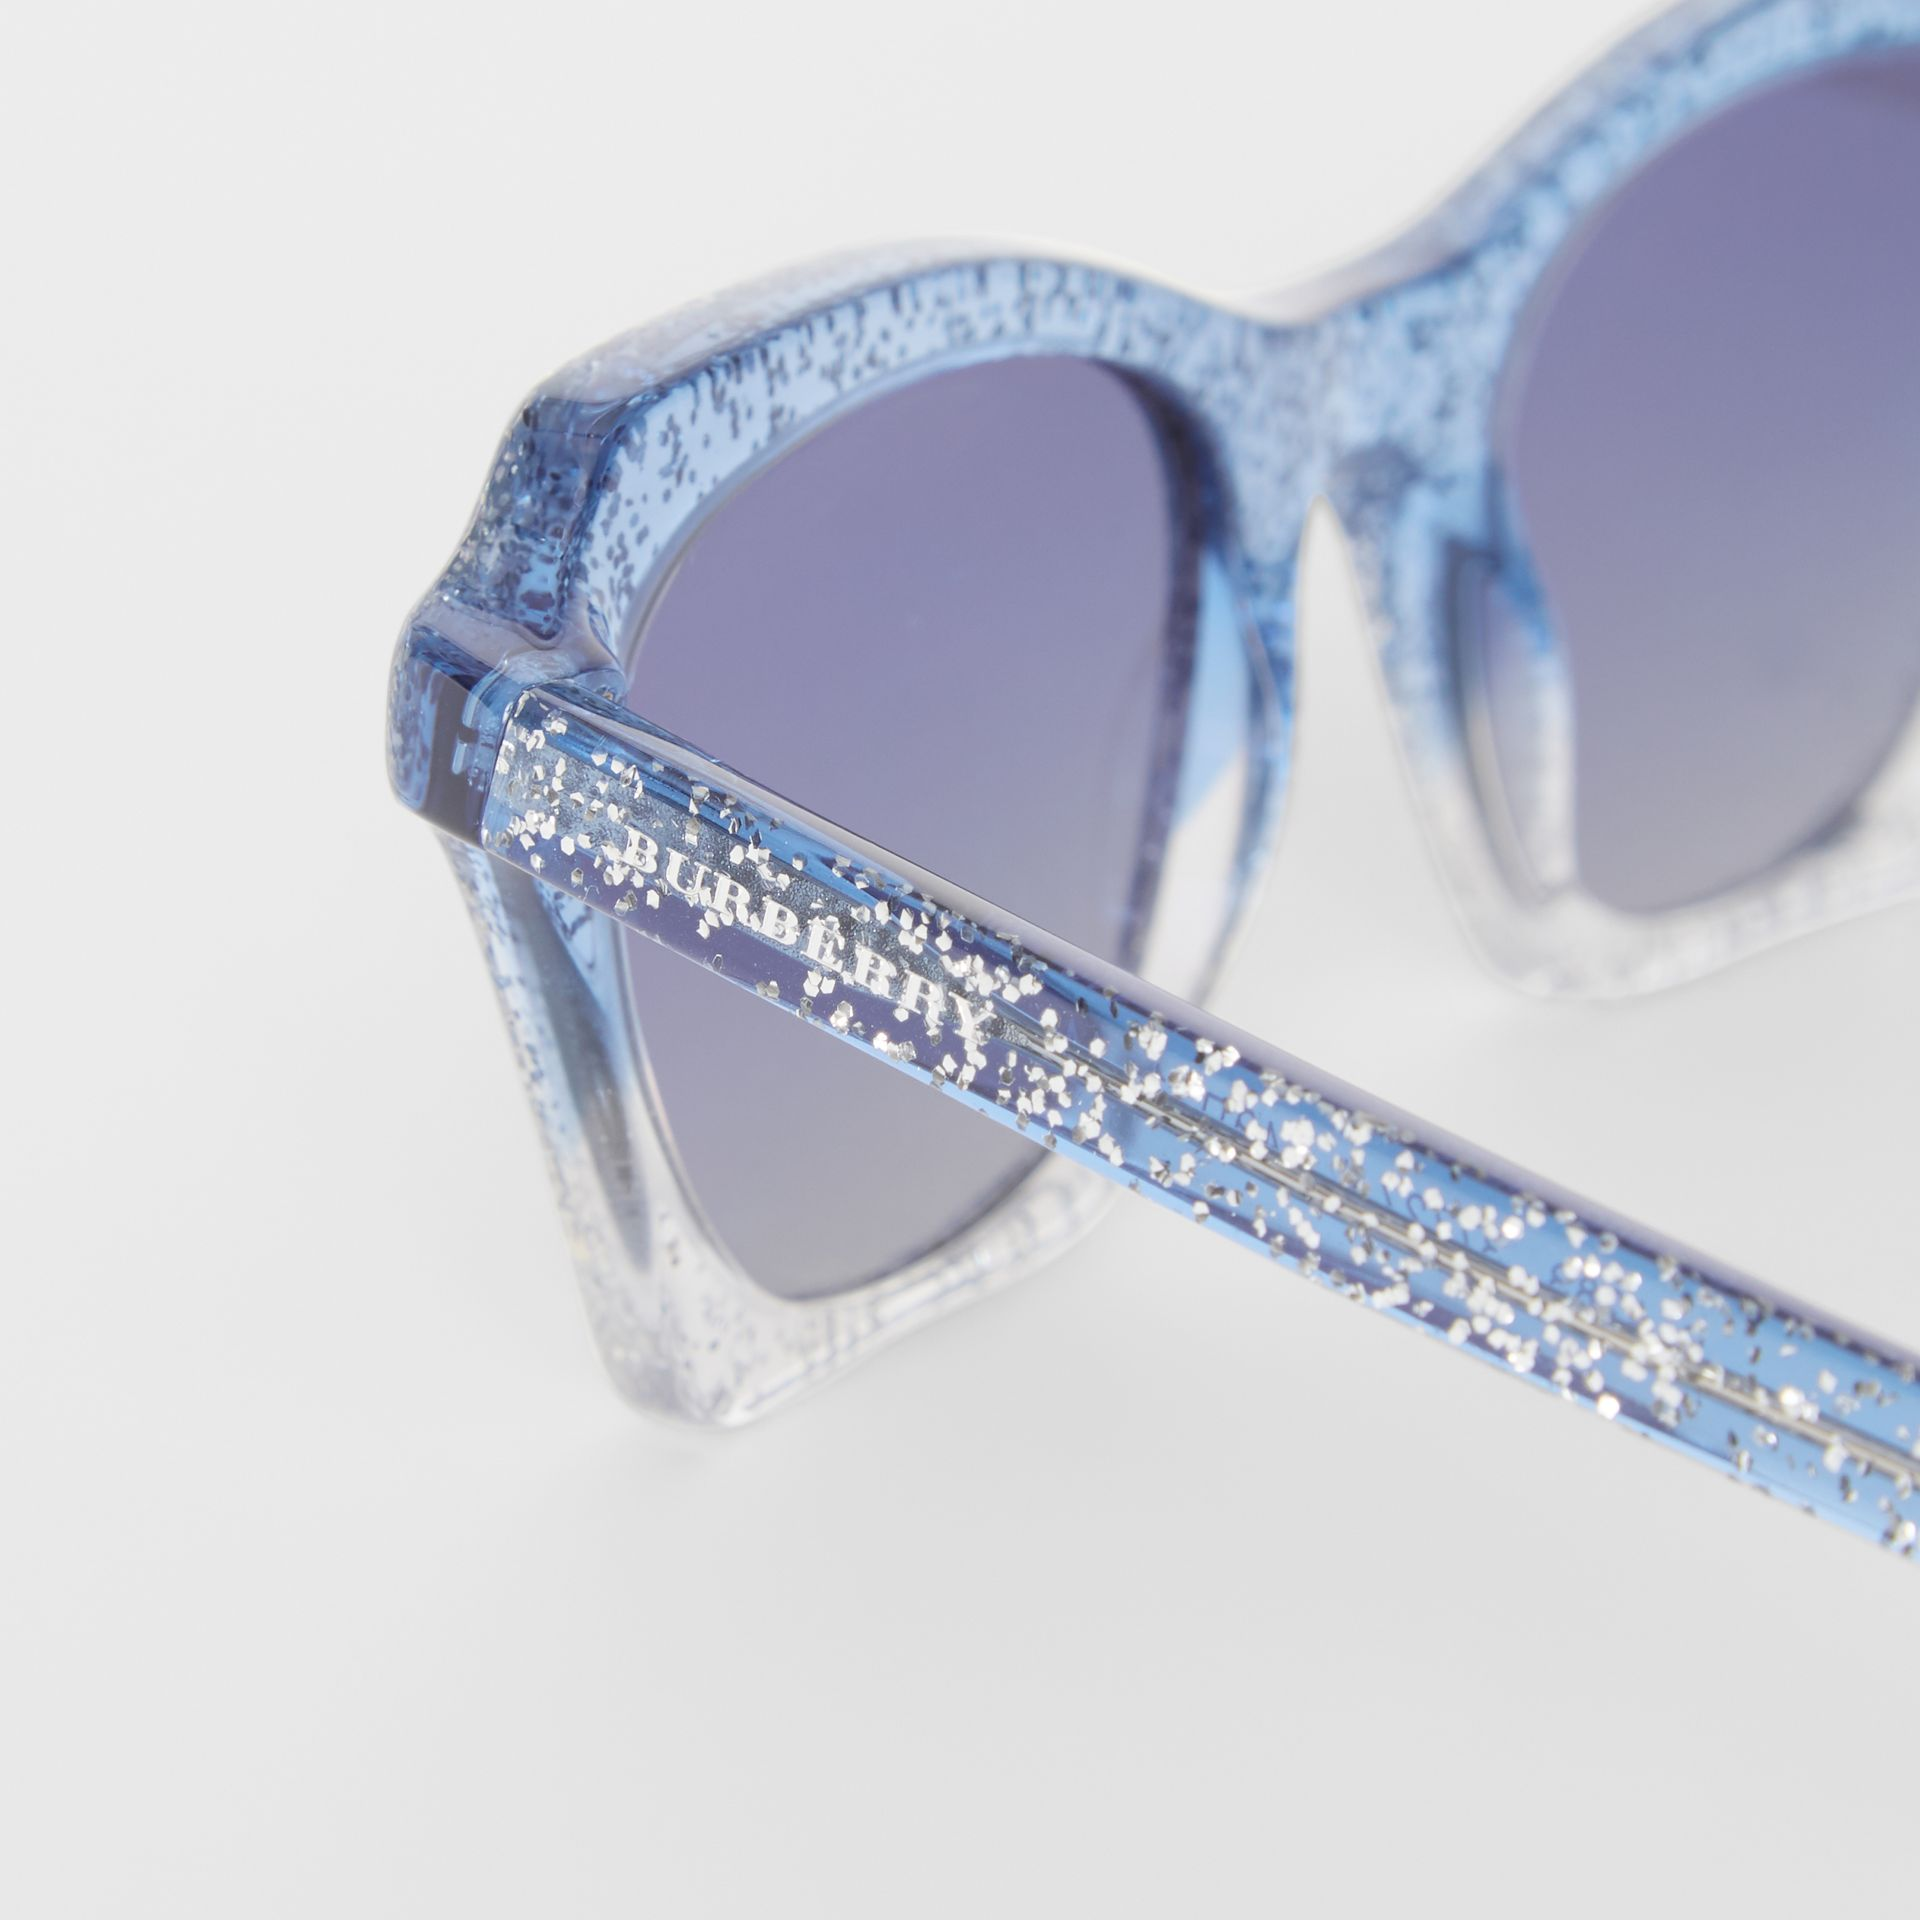 Butterfly Frame Sunglasses in Blue - Women | Burberry Australia - gallery image 1